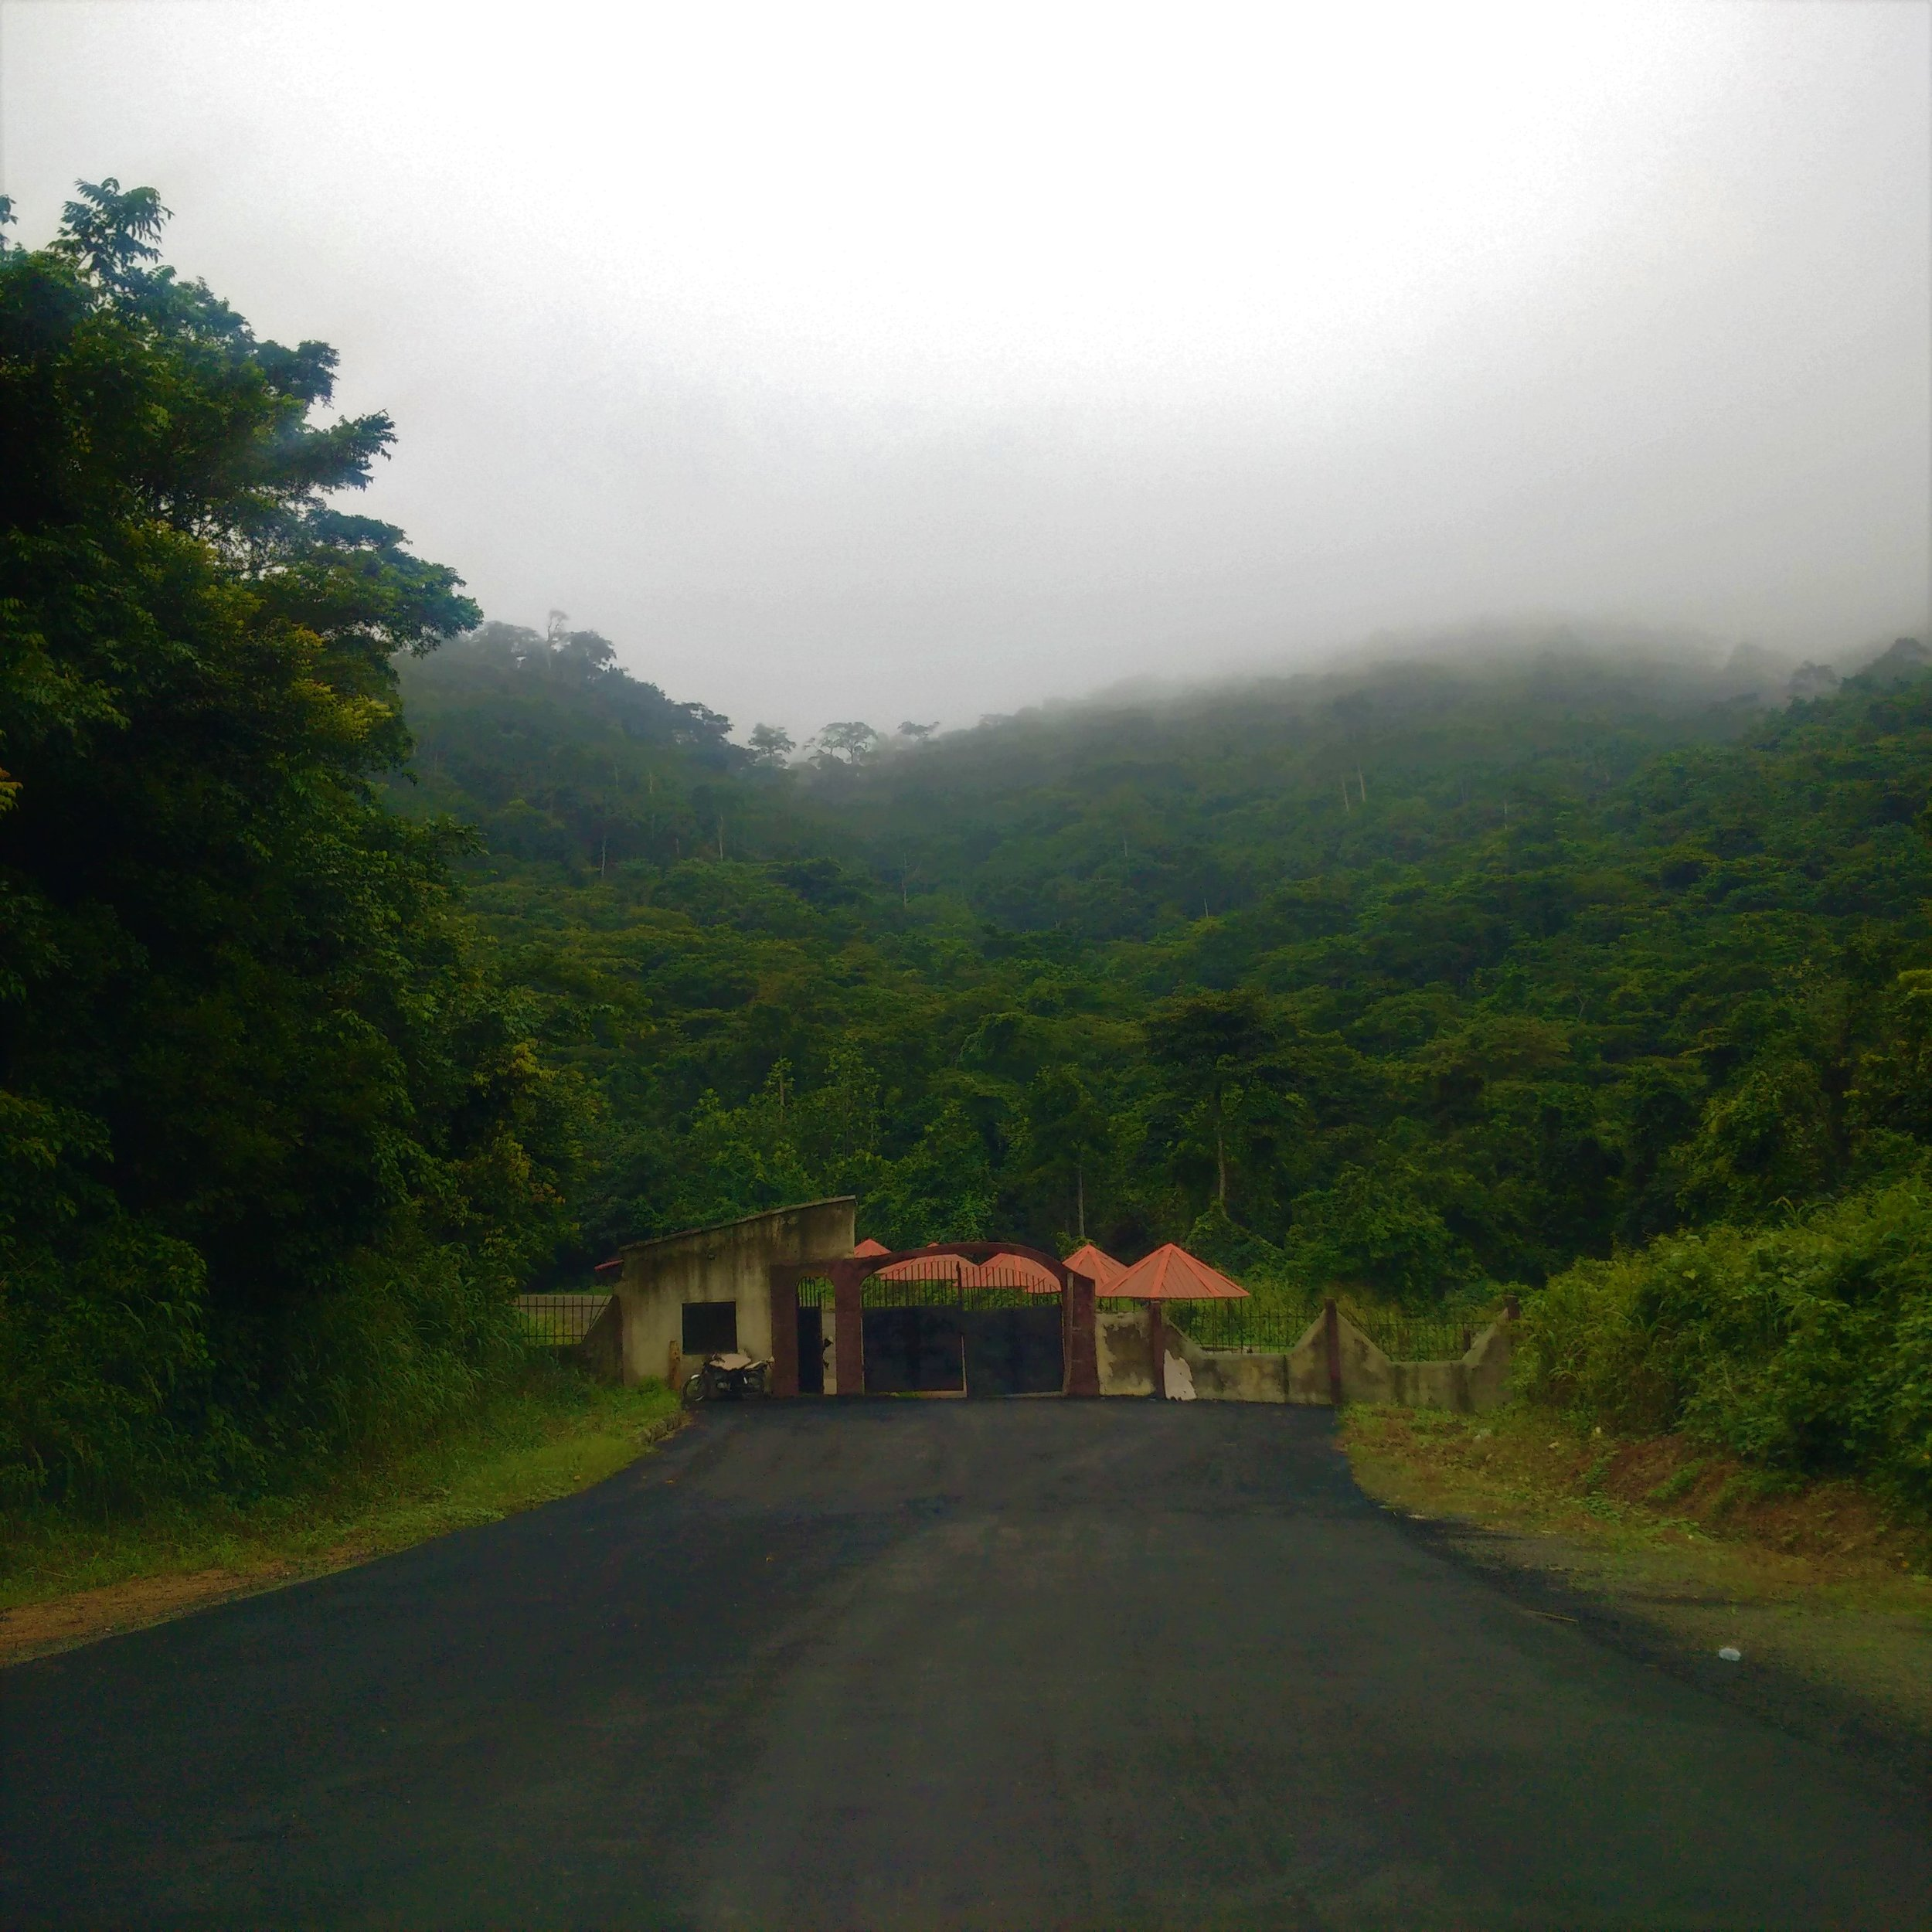 Gosh! Such scenery at Arinta Waterfalls. The entrance gate